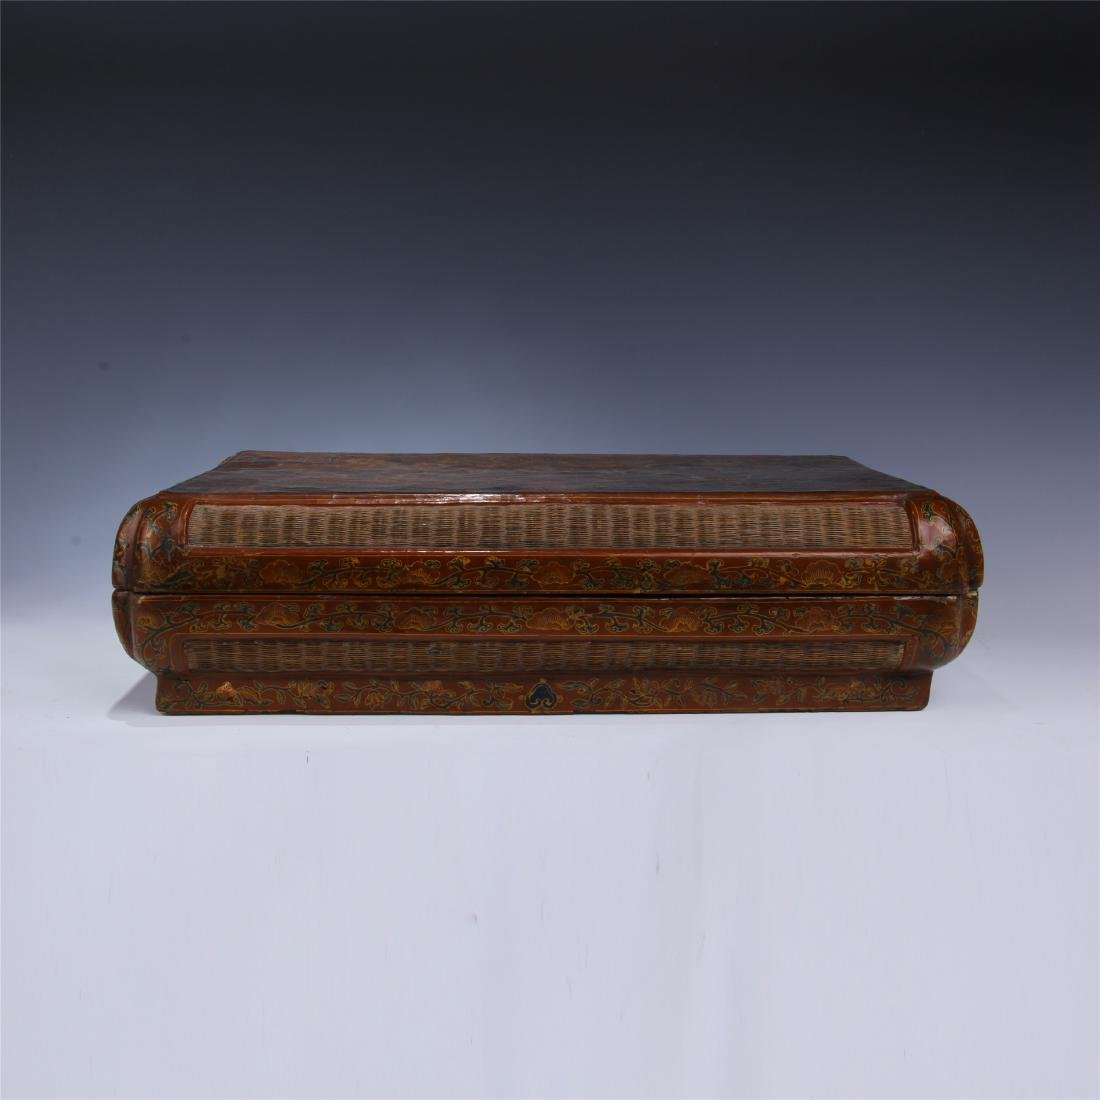 CHINESE LACQUERED RATTEN WEAVED SQUARE CONTAINER